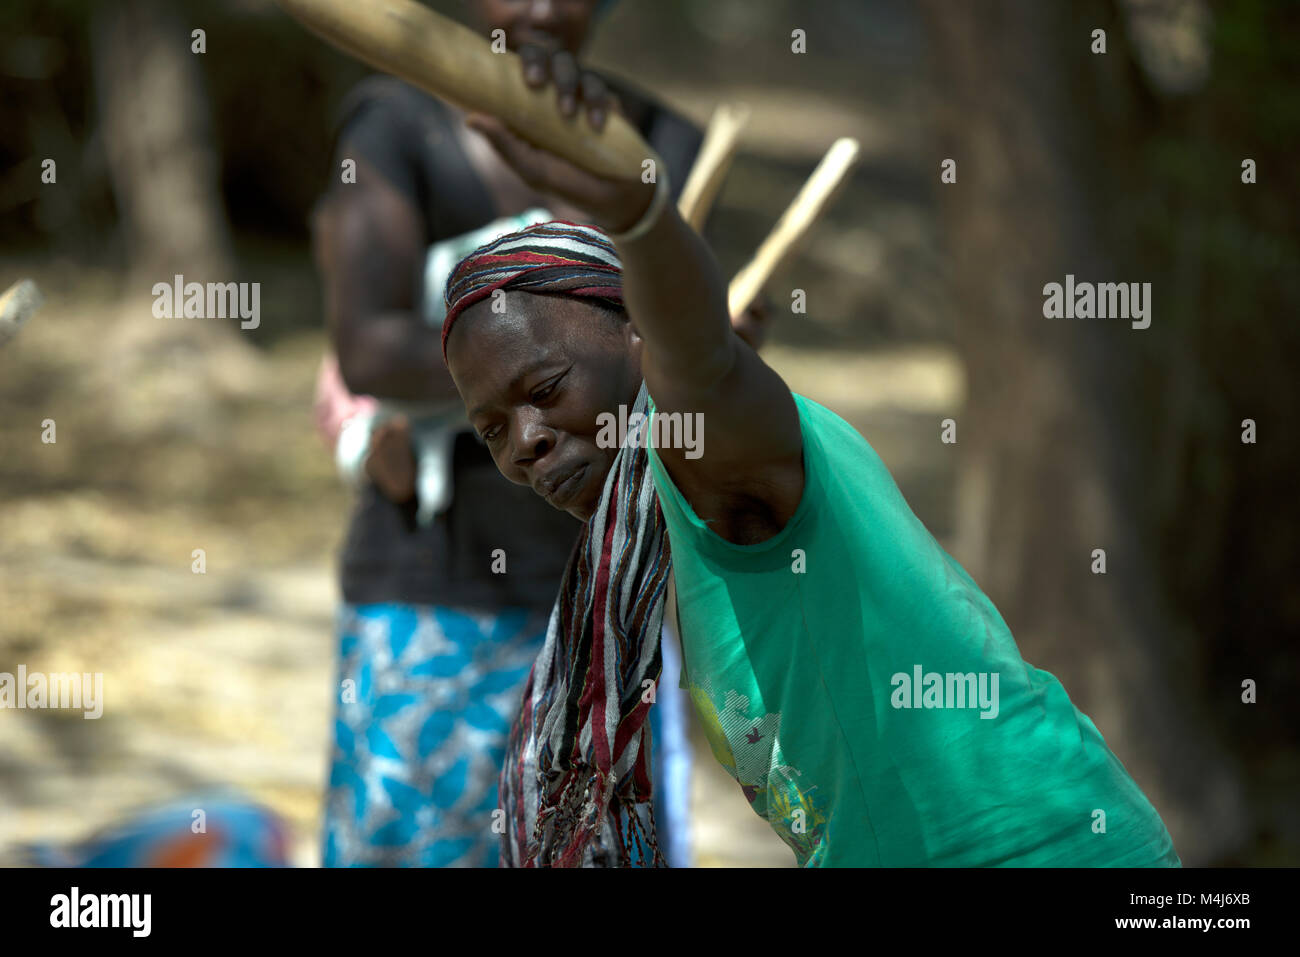 An ethnic Mandingo (Mandinka) woman dances during a traditional, ceremonial music performance in her village, The - Stock Image